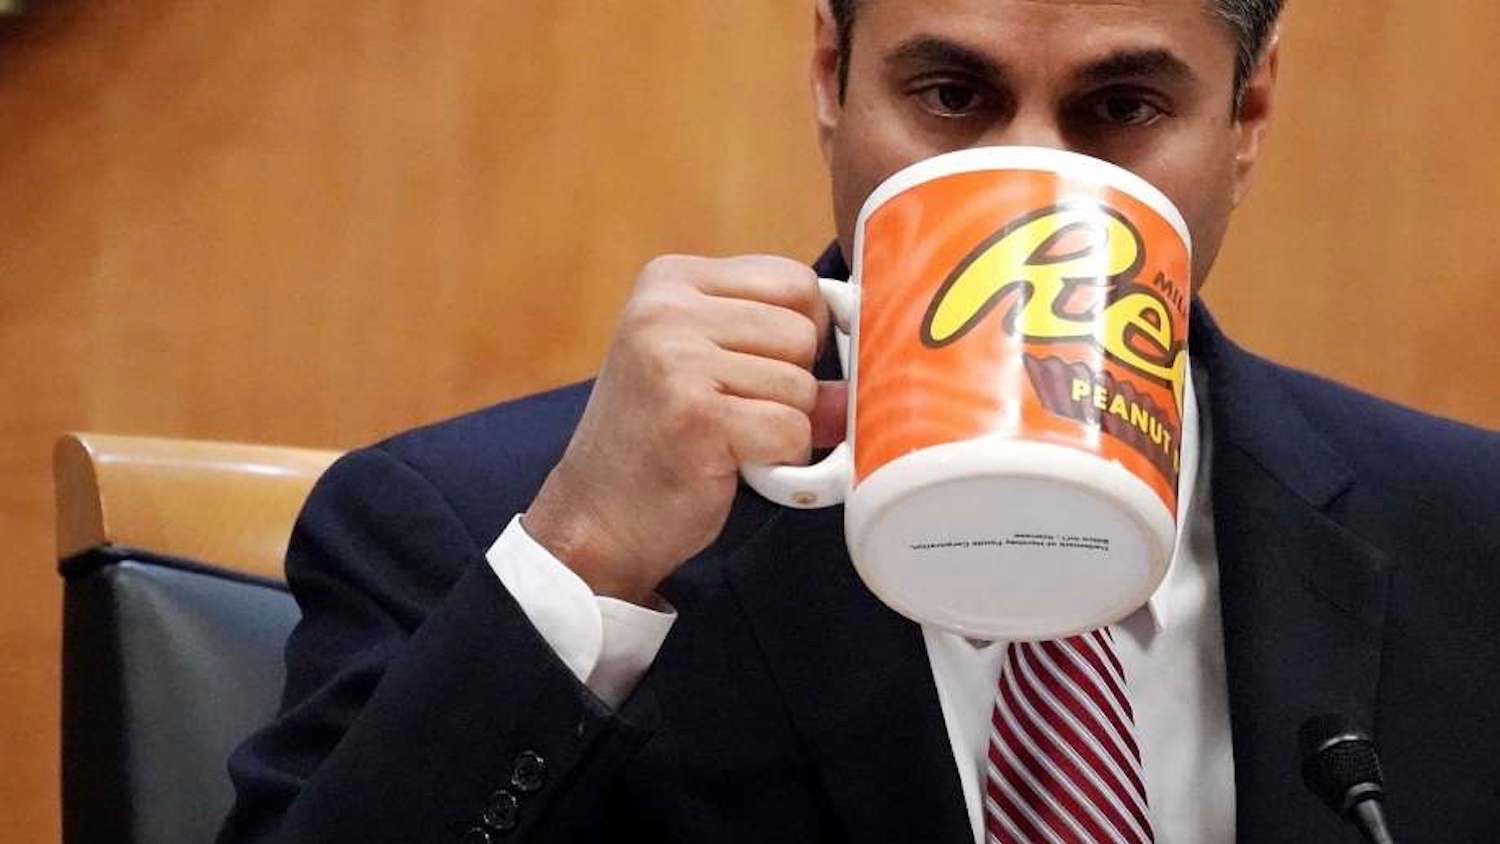 FCC chairman Ajit Pai to resign next month after controversial four years under President Trump